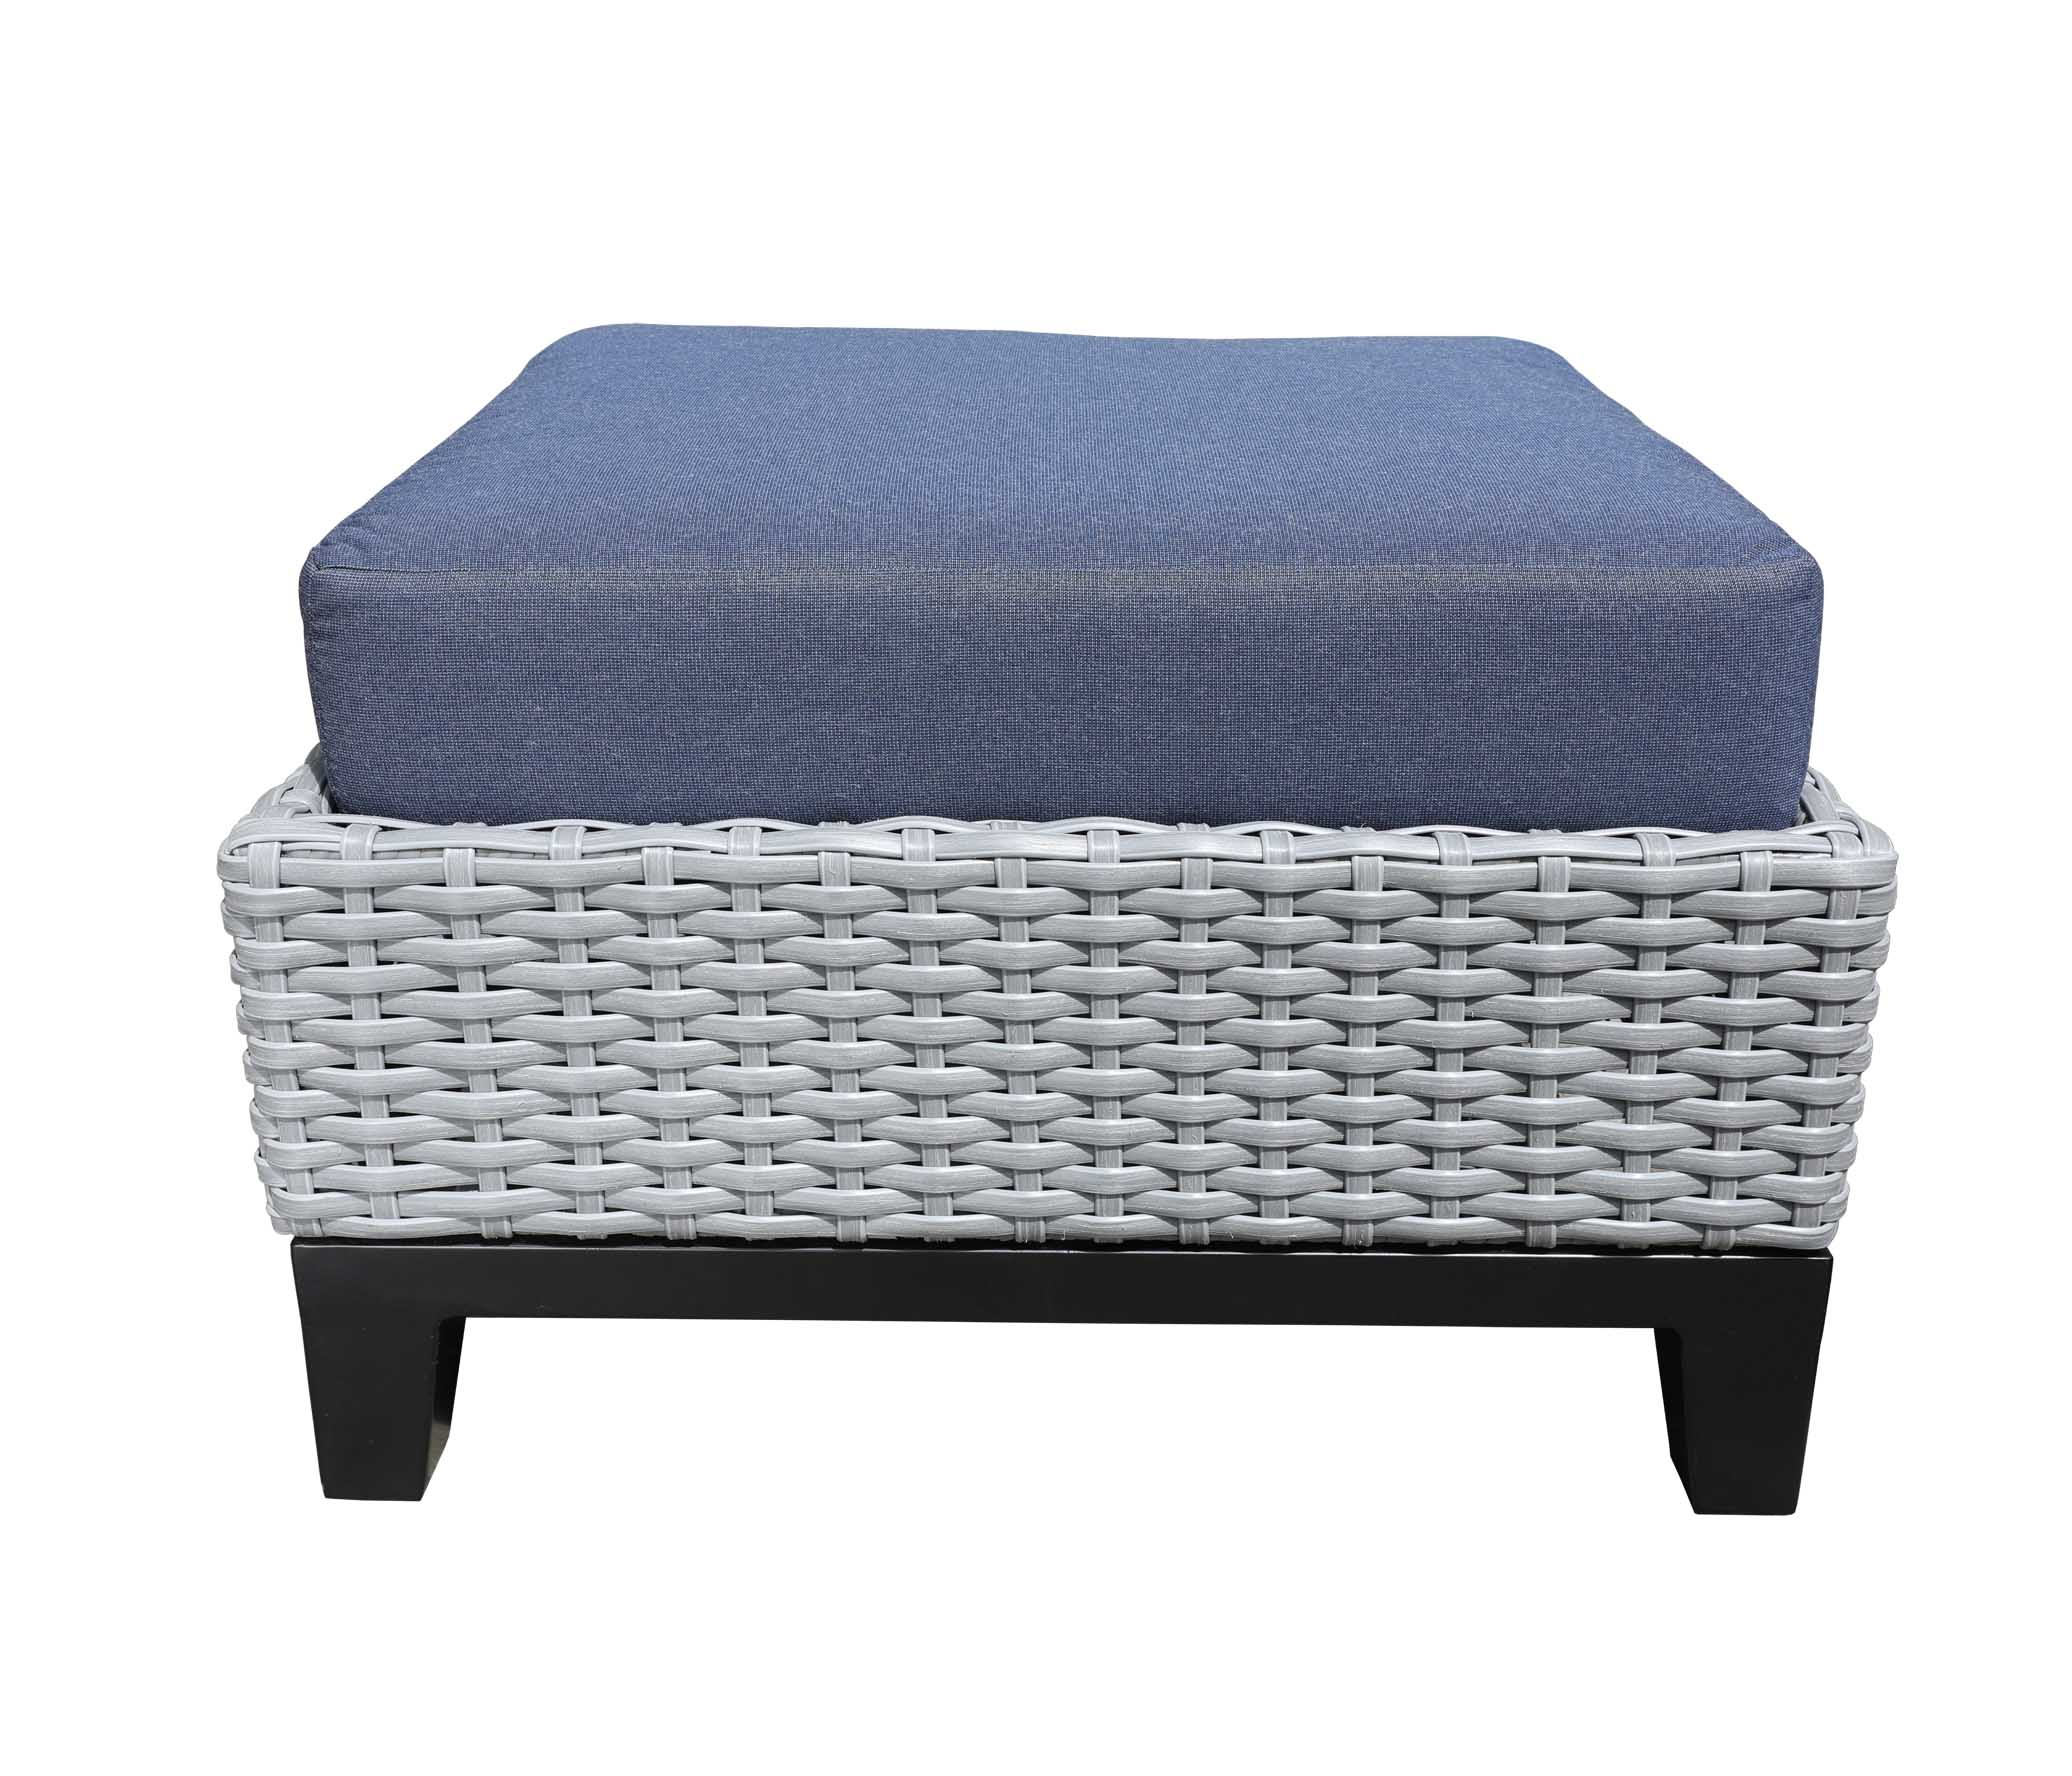 Oakville Outdoor Furniture Tribeca Ottoman 9423 Patio Furniture Wicker Tribeca